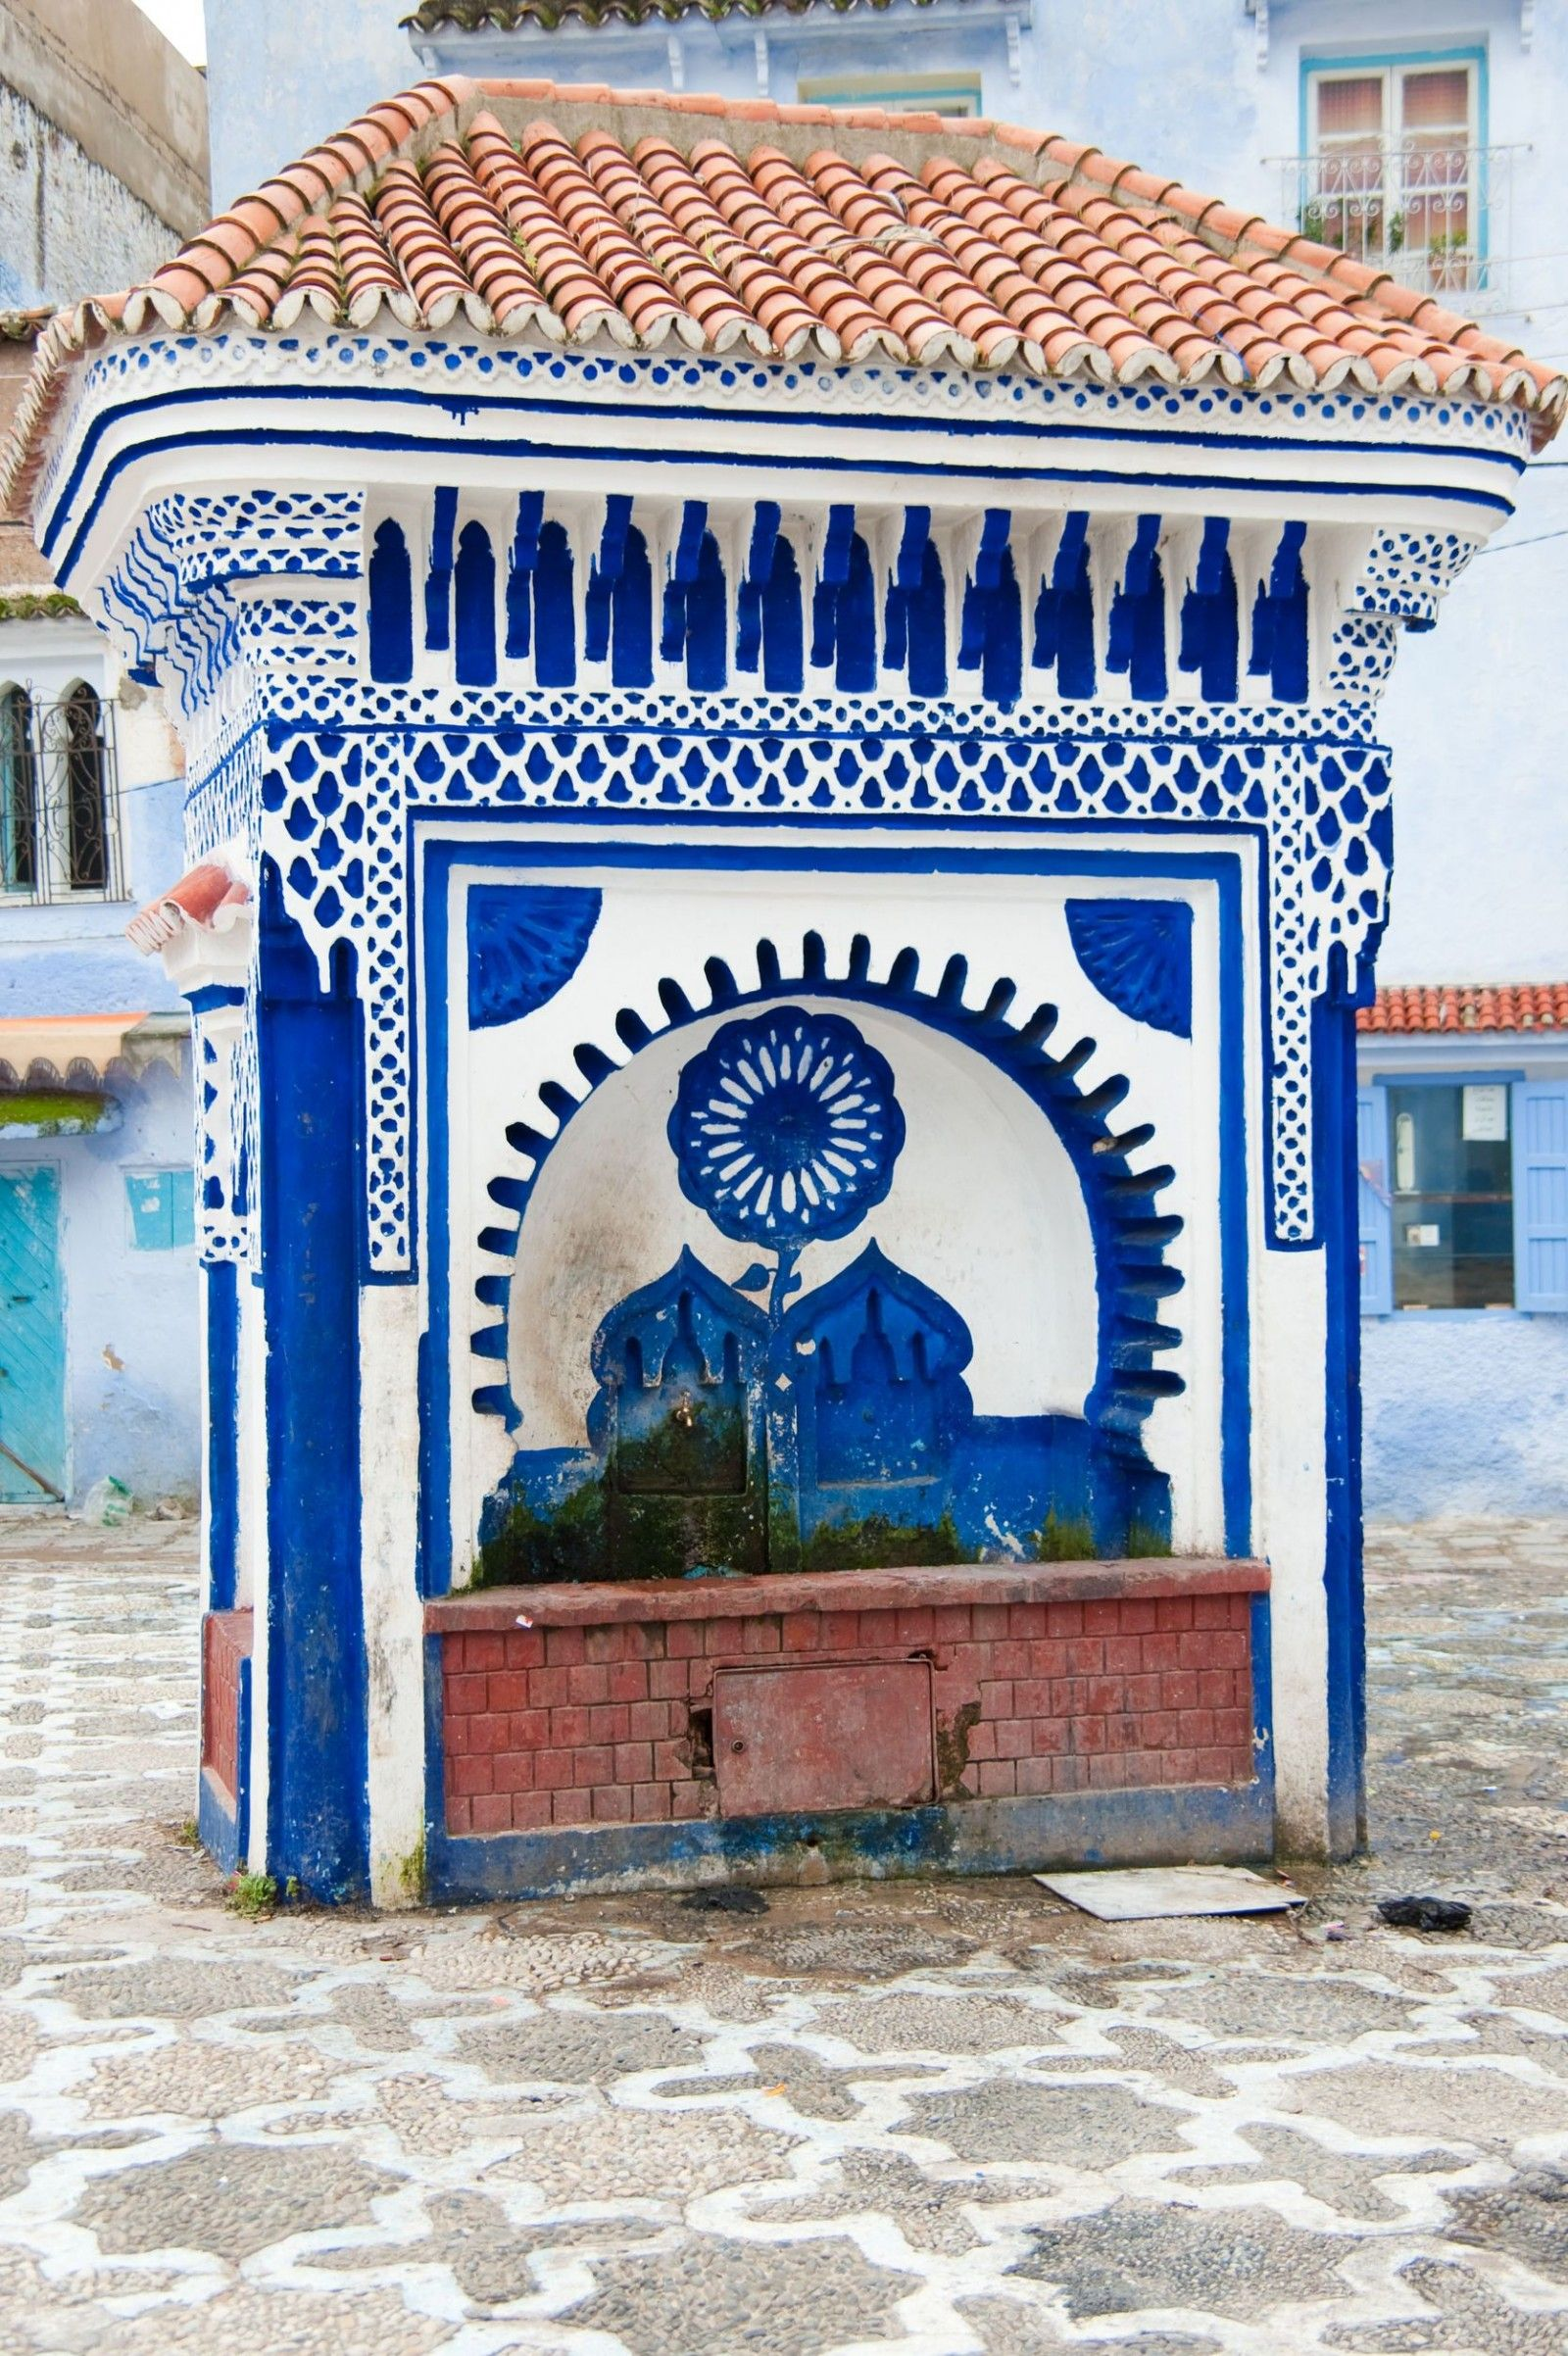 Image of Fountain Of Chefchaouen, Morocco - Maroc Désert Expérience tours http://www.marocdesertexperience